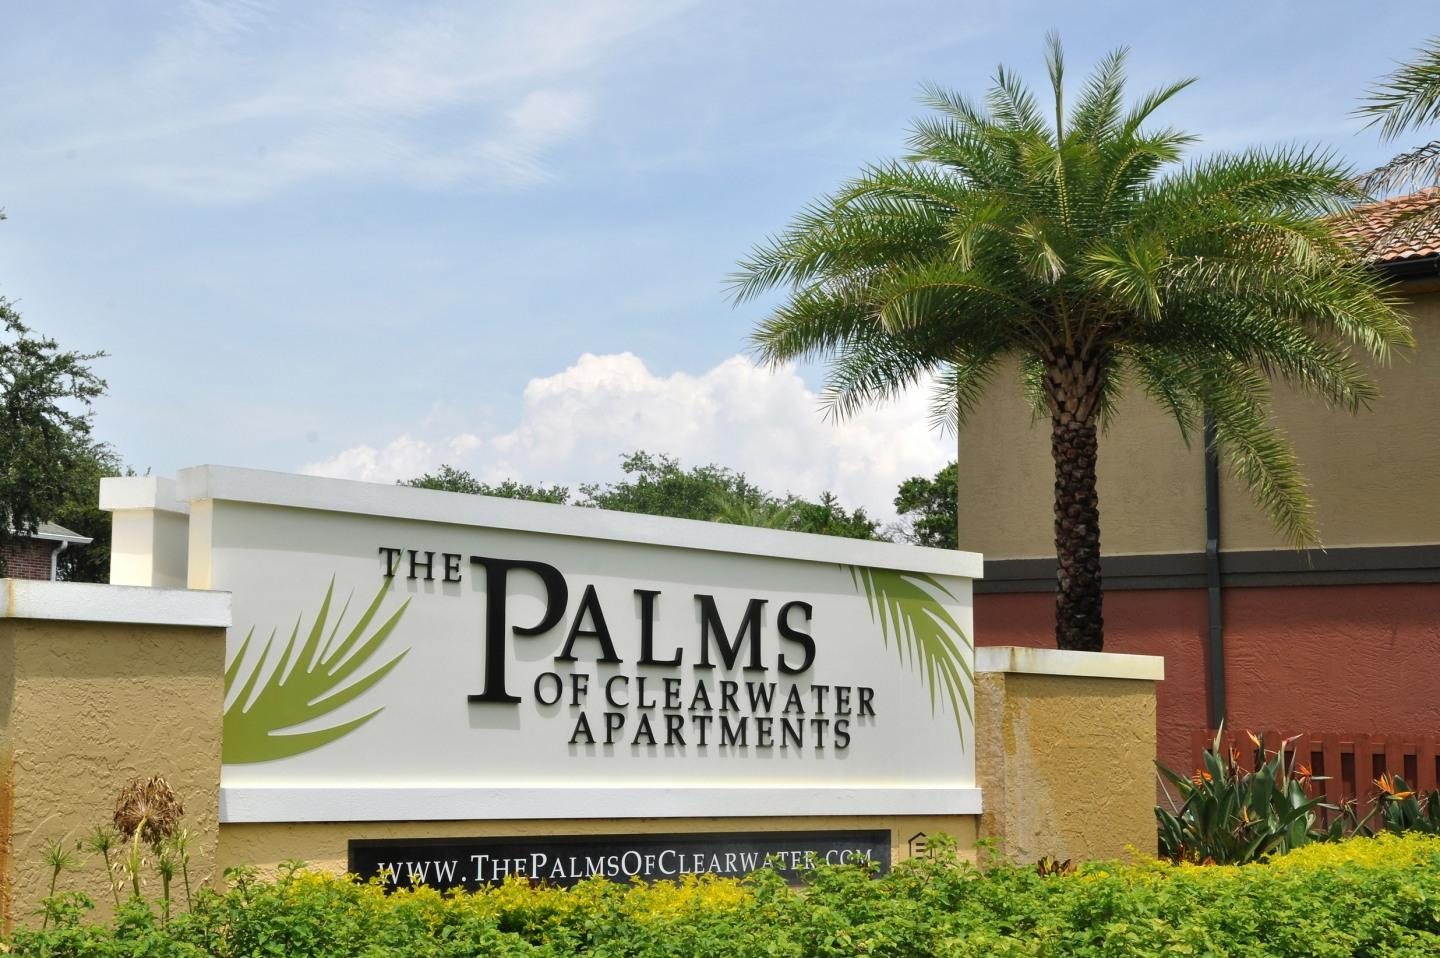 Palms of Clearwater Apartments photo #1